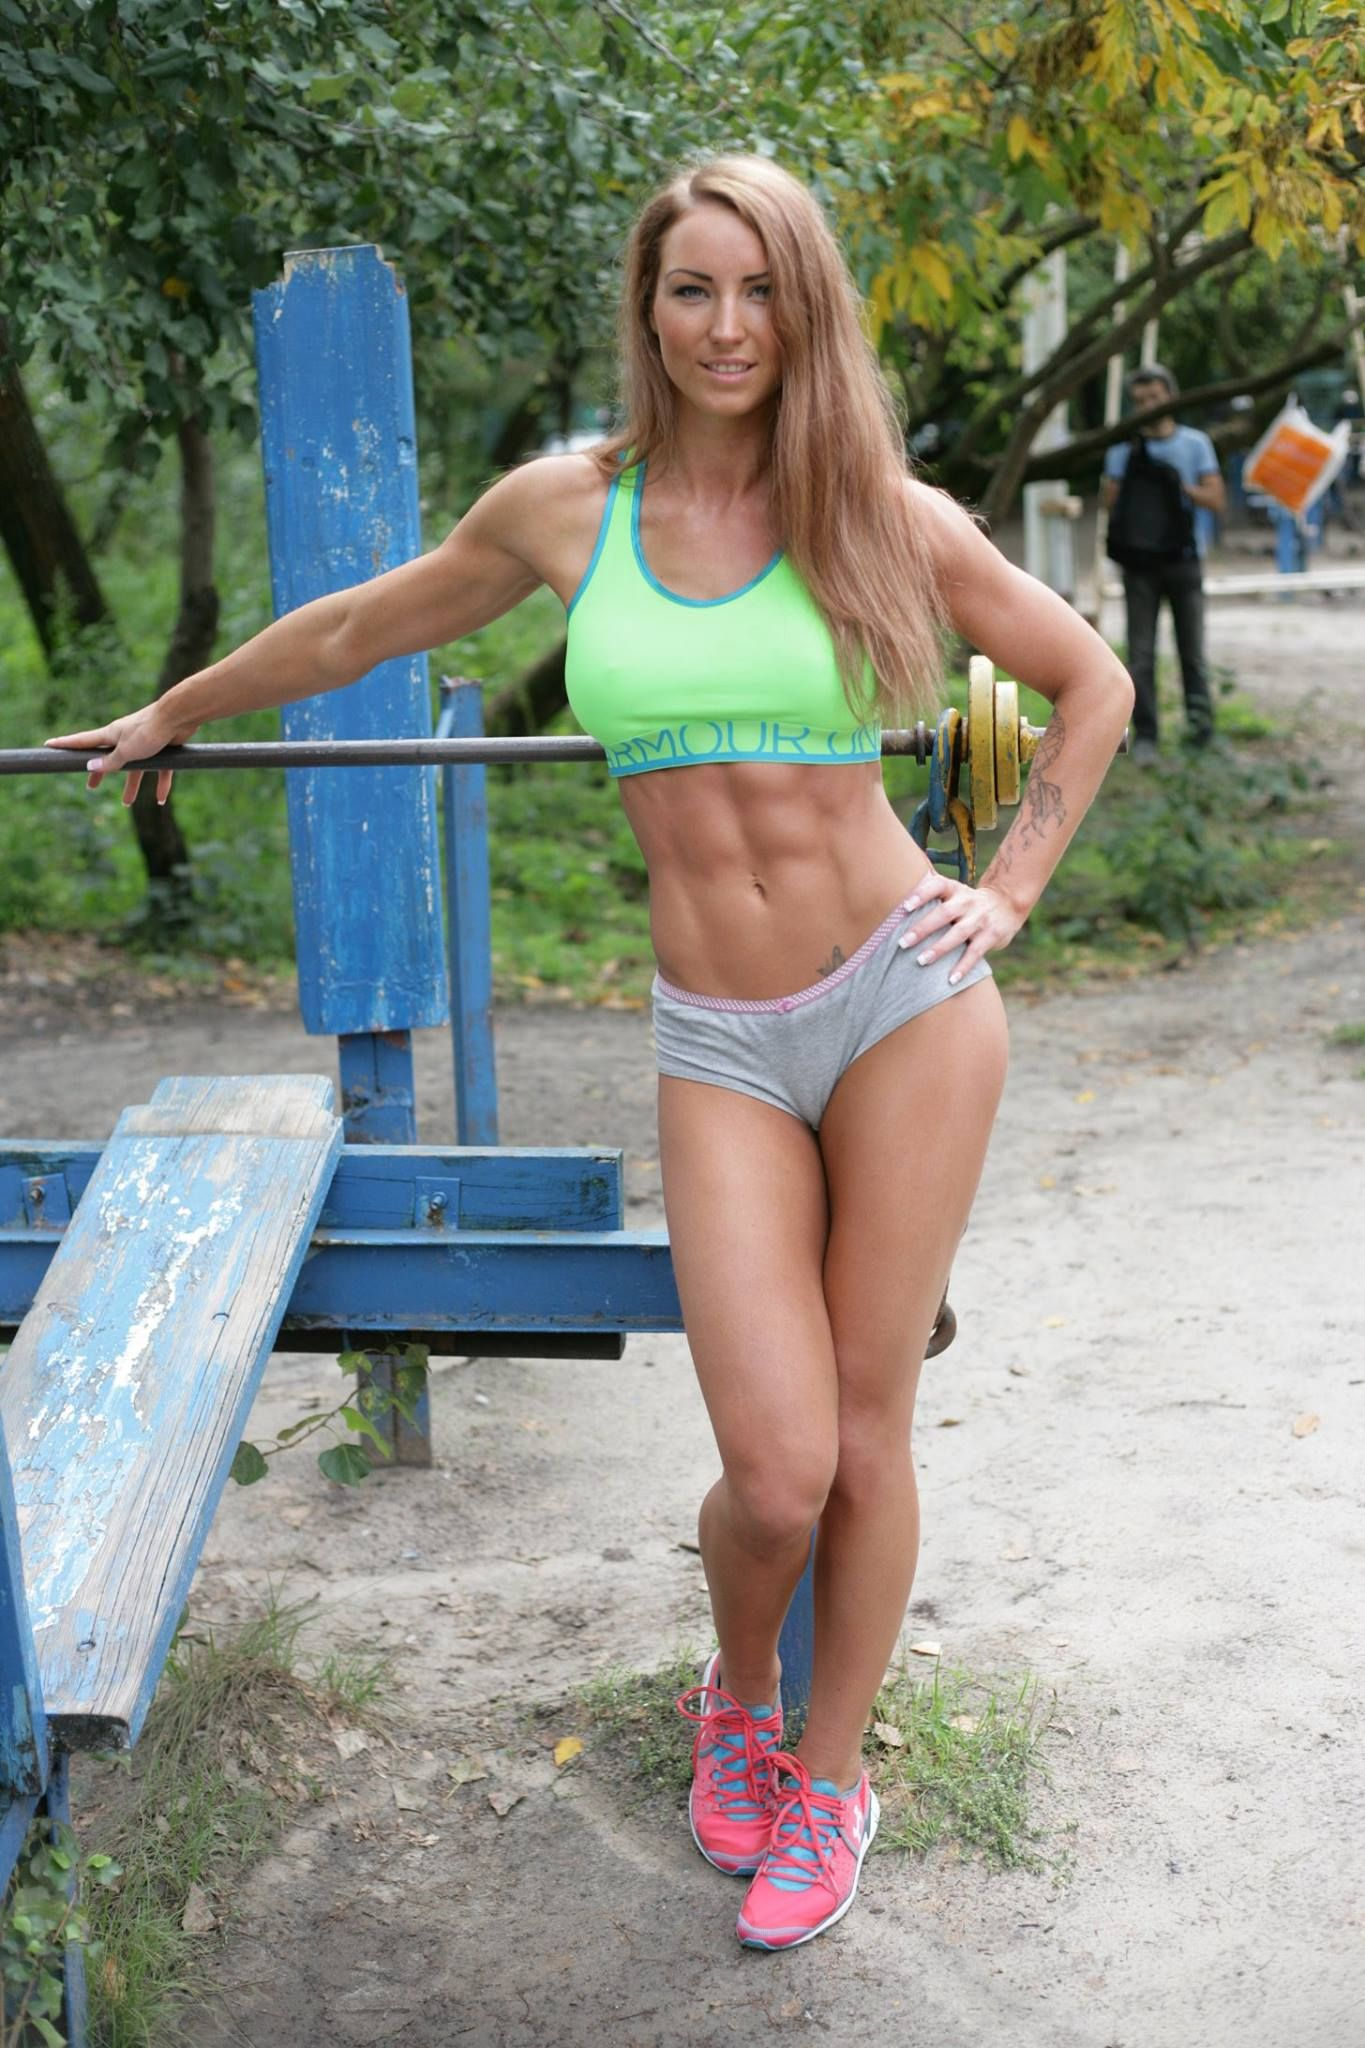 [Athletic Babes] Beautiful in the park